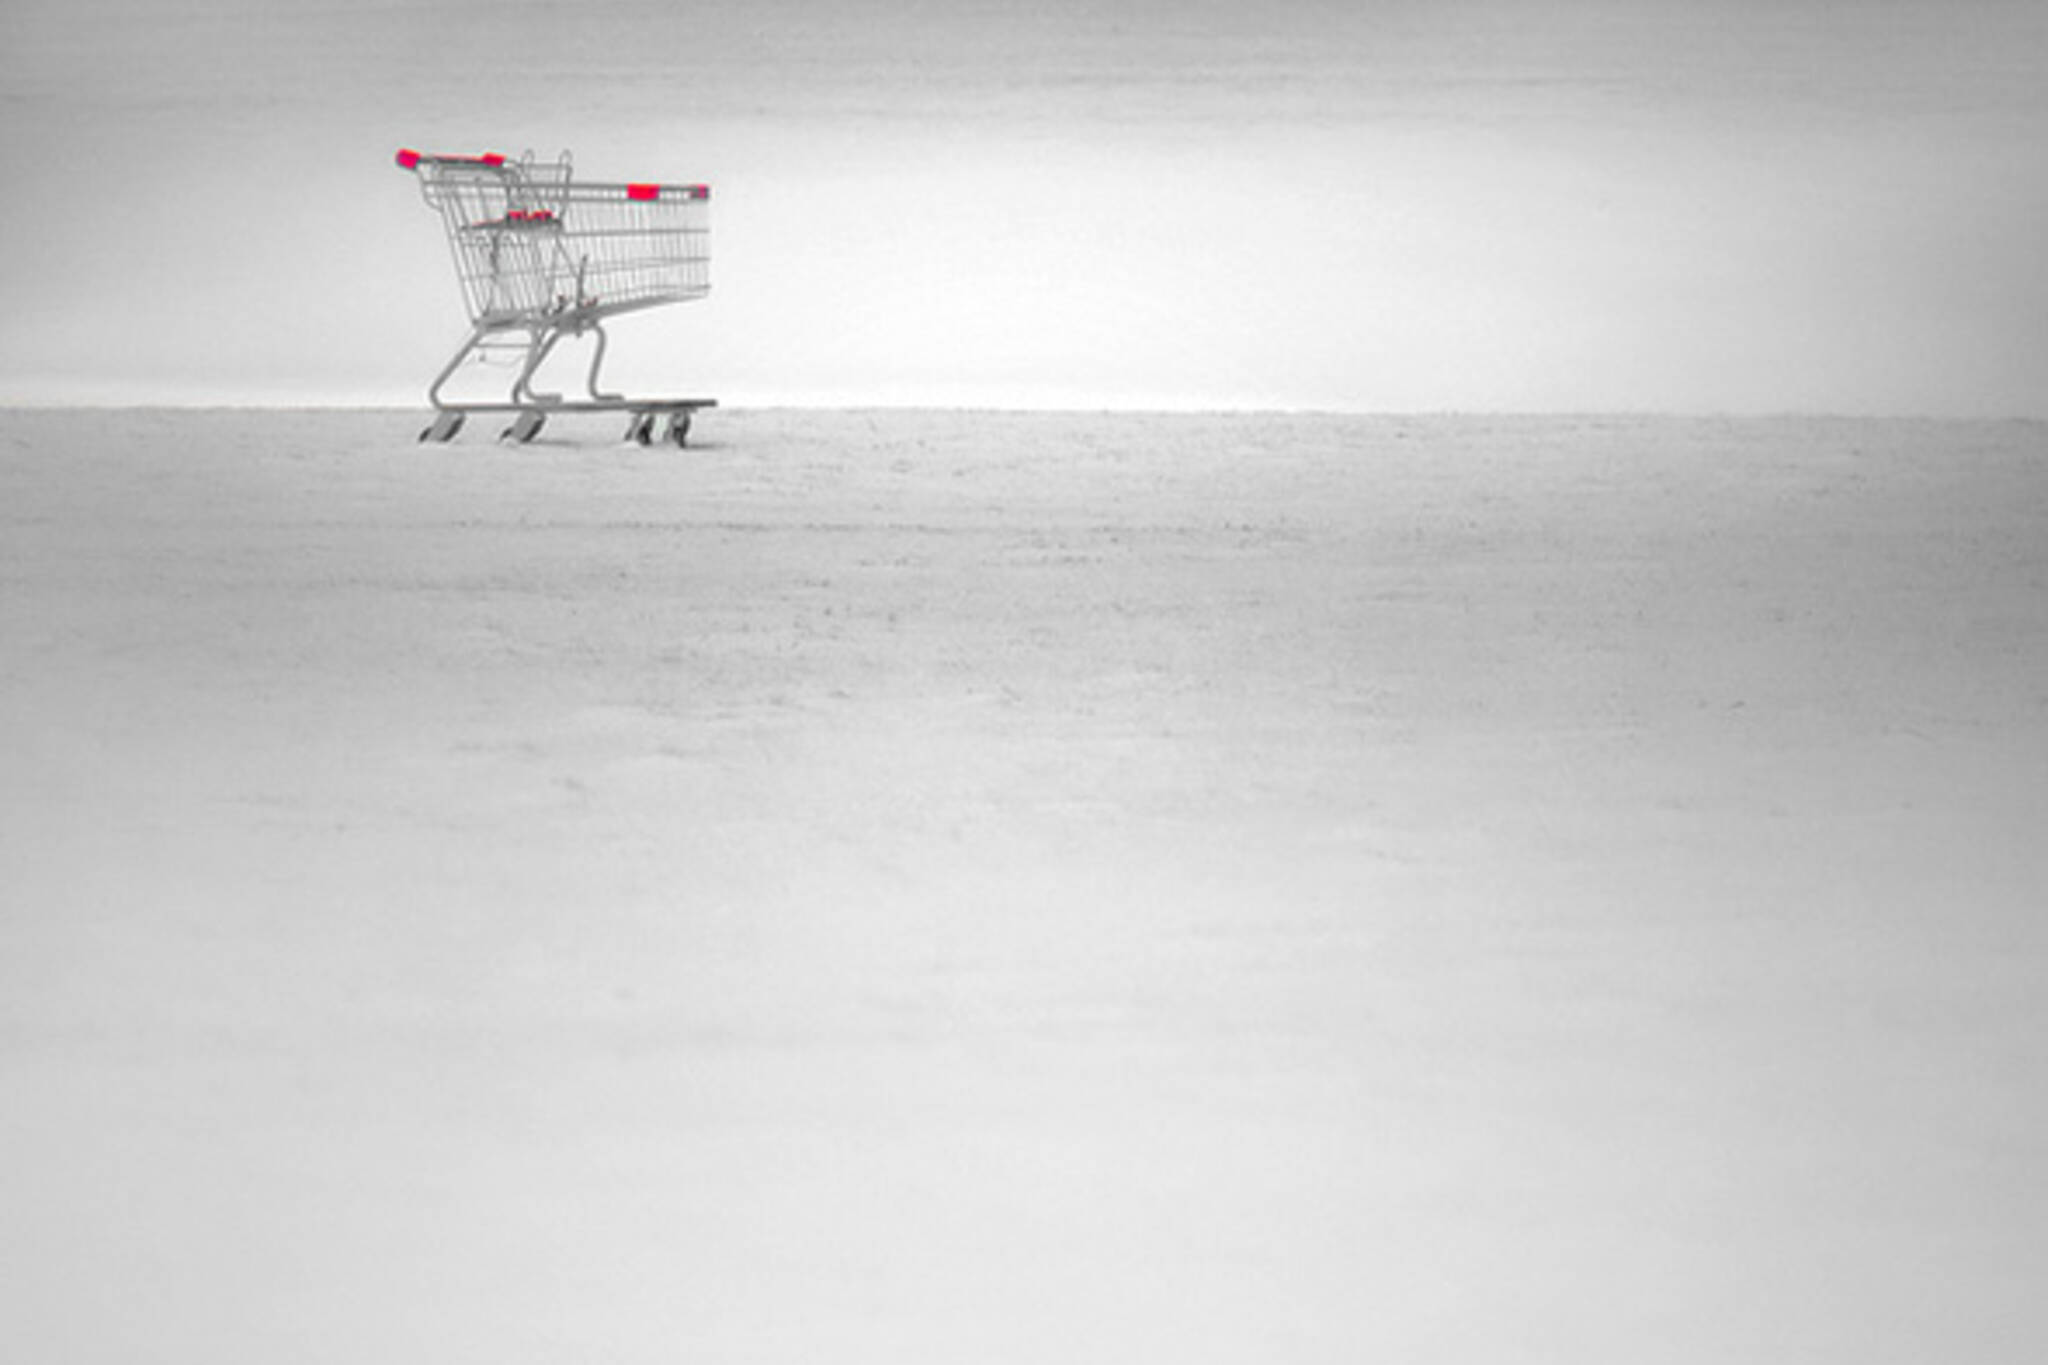 snow shopping cart